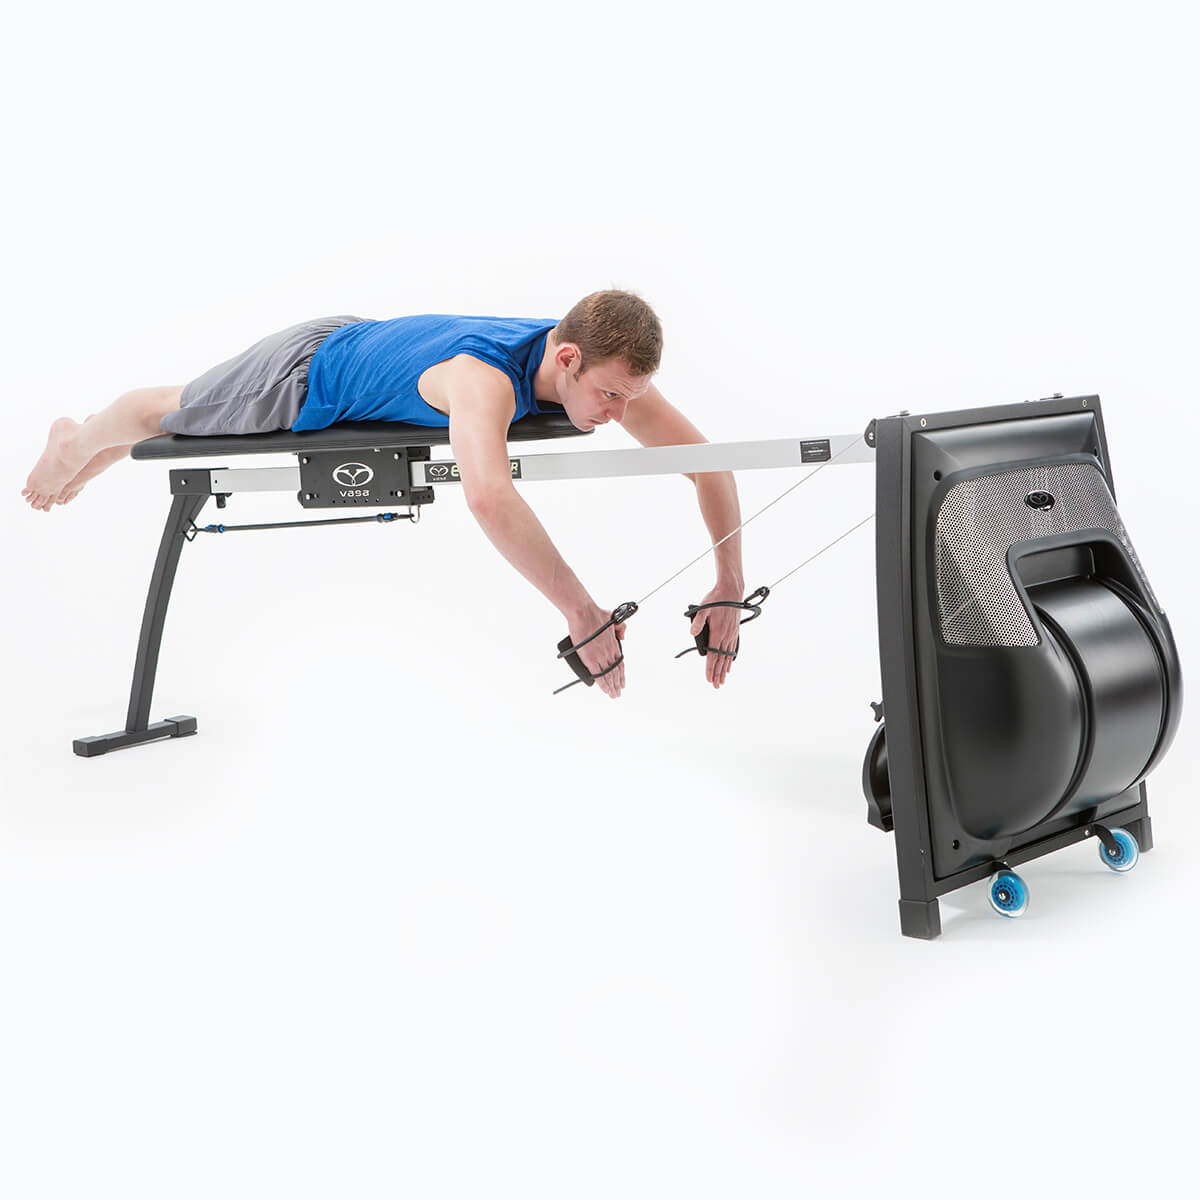 Adjustable Bench With Leg Extension